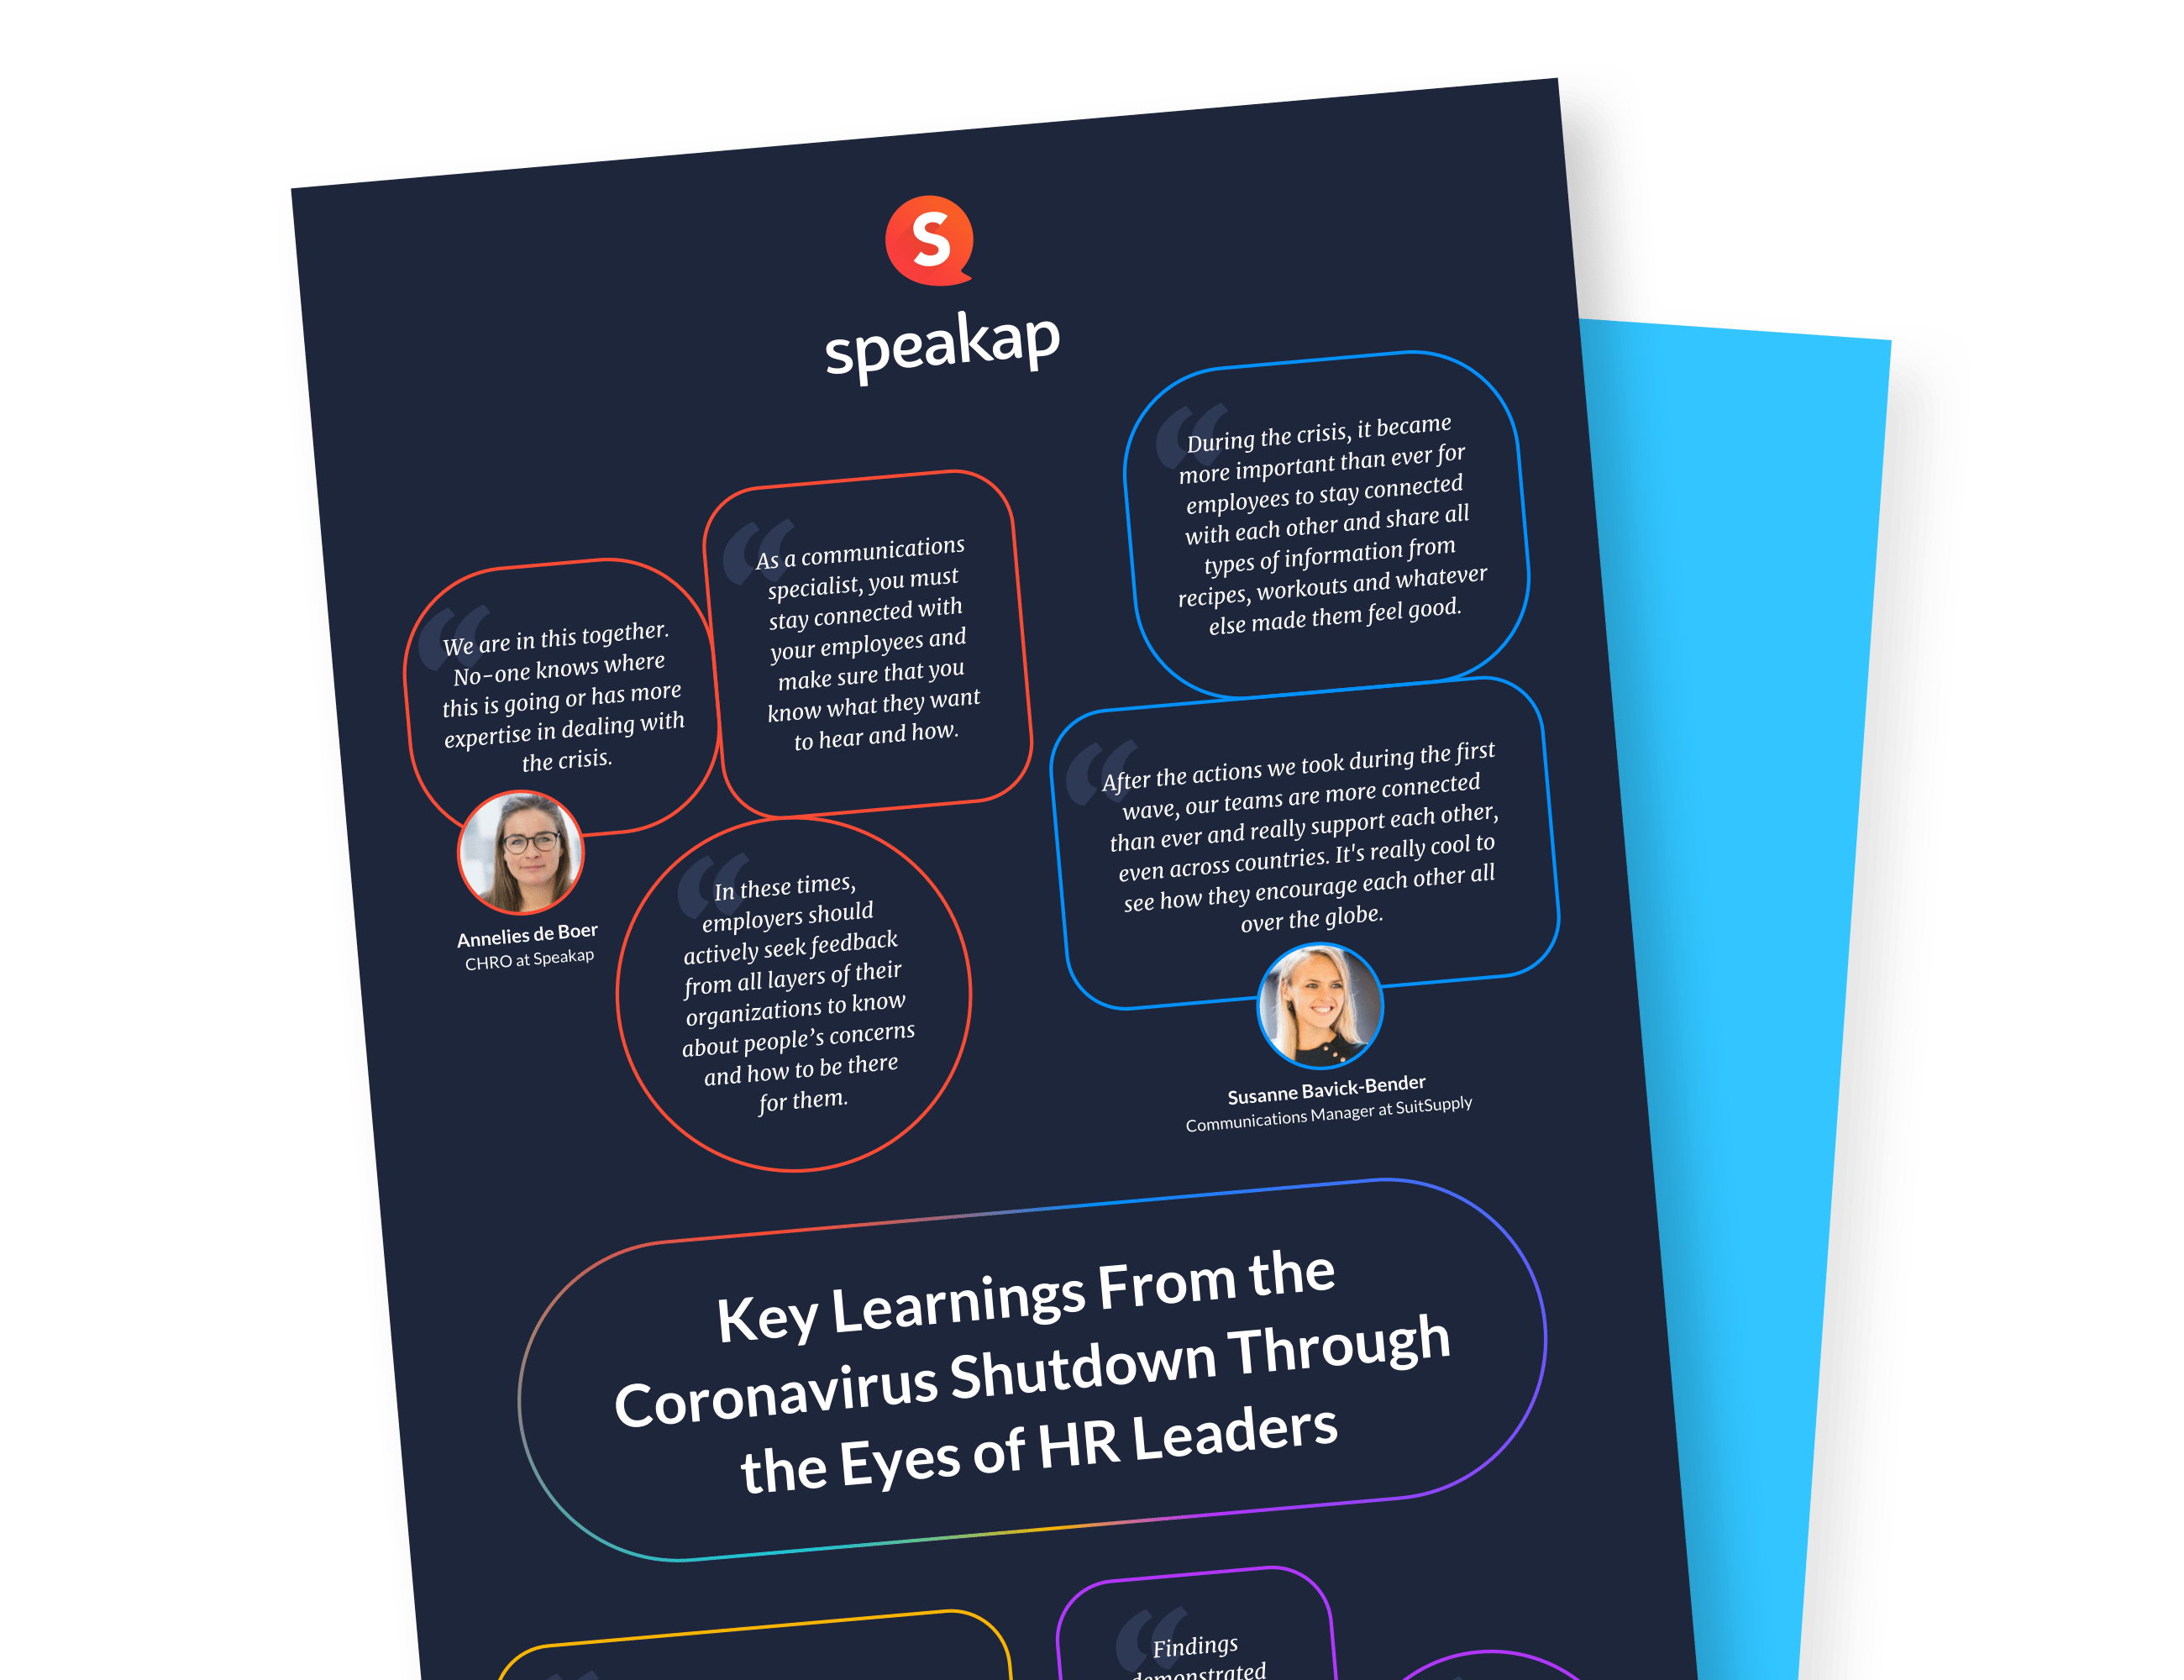 Key Learnings Infographic Feature image